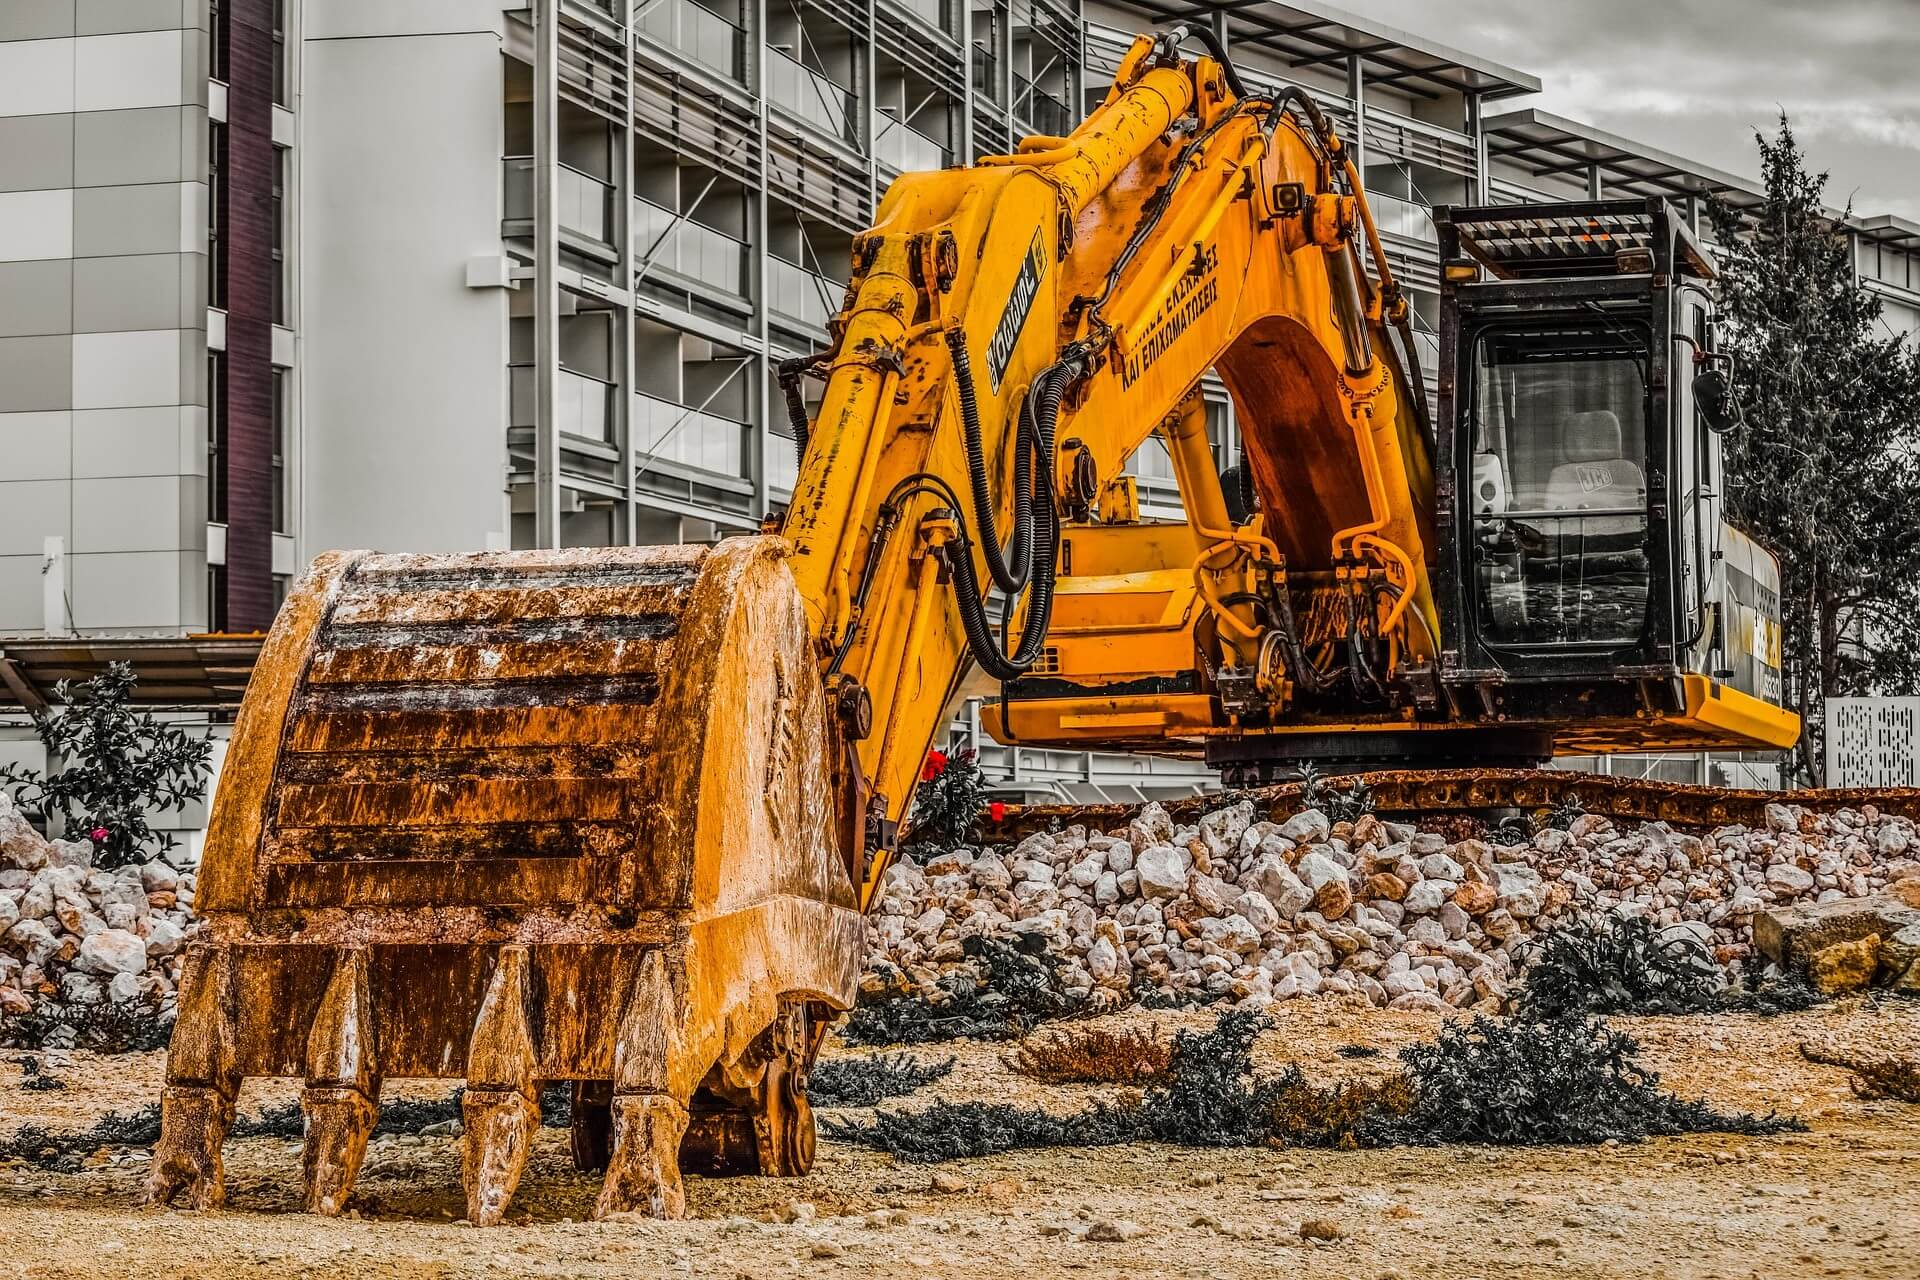 Carillion: the sudden demise of a mighty name raises many questions